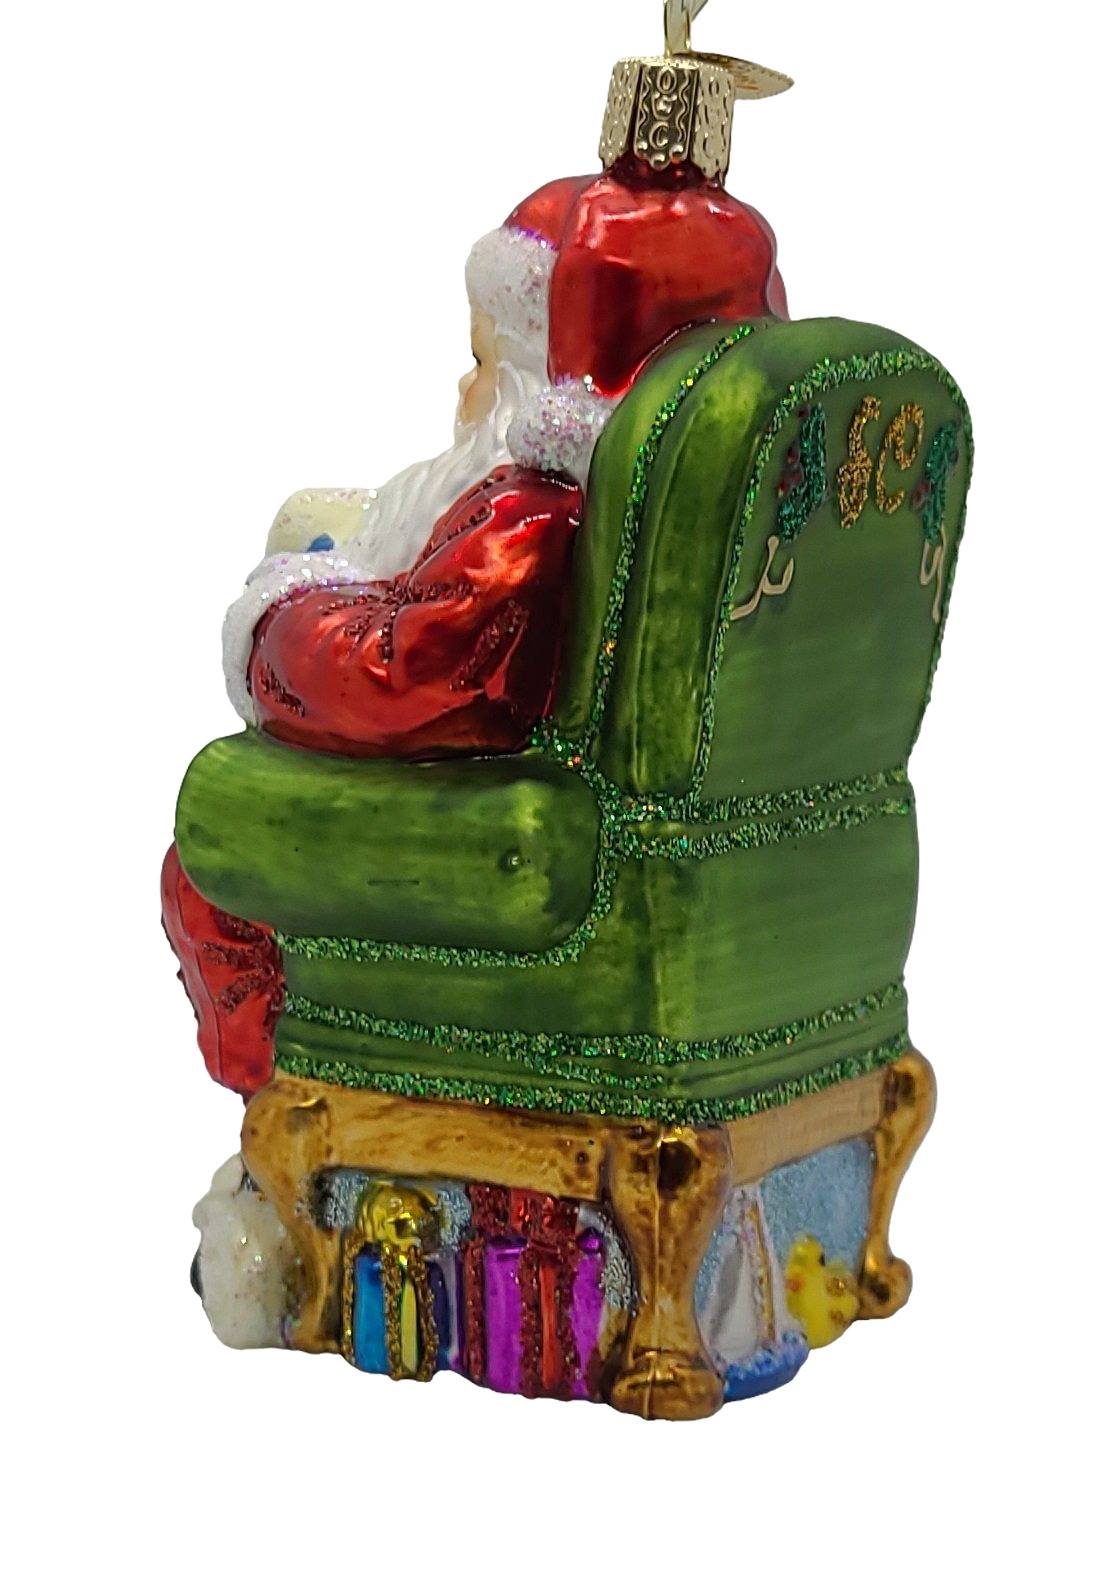 Blown Glass Hanging Santa Checking His List Christmas Ornament - Schmidt Christmas Market Christmas Decoration